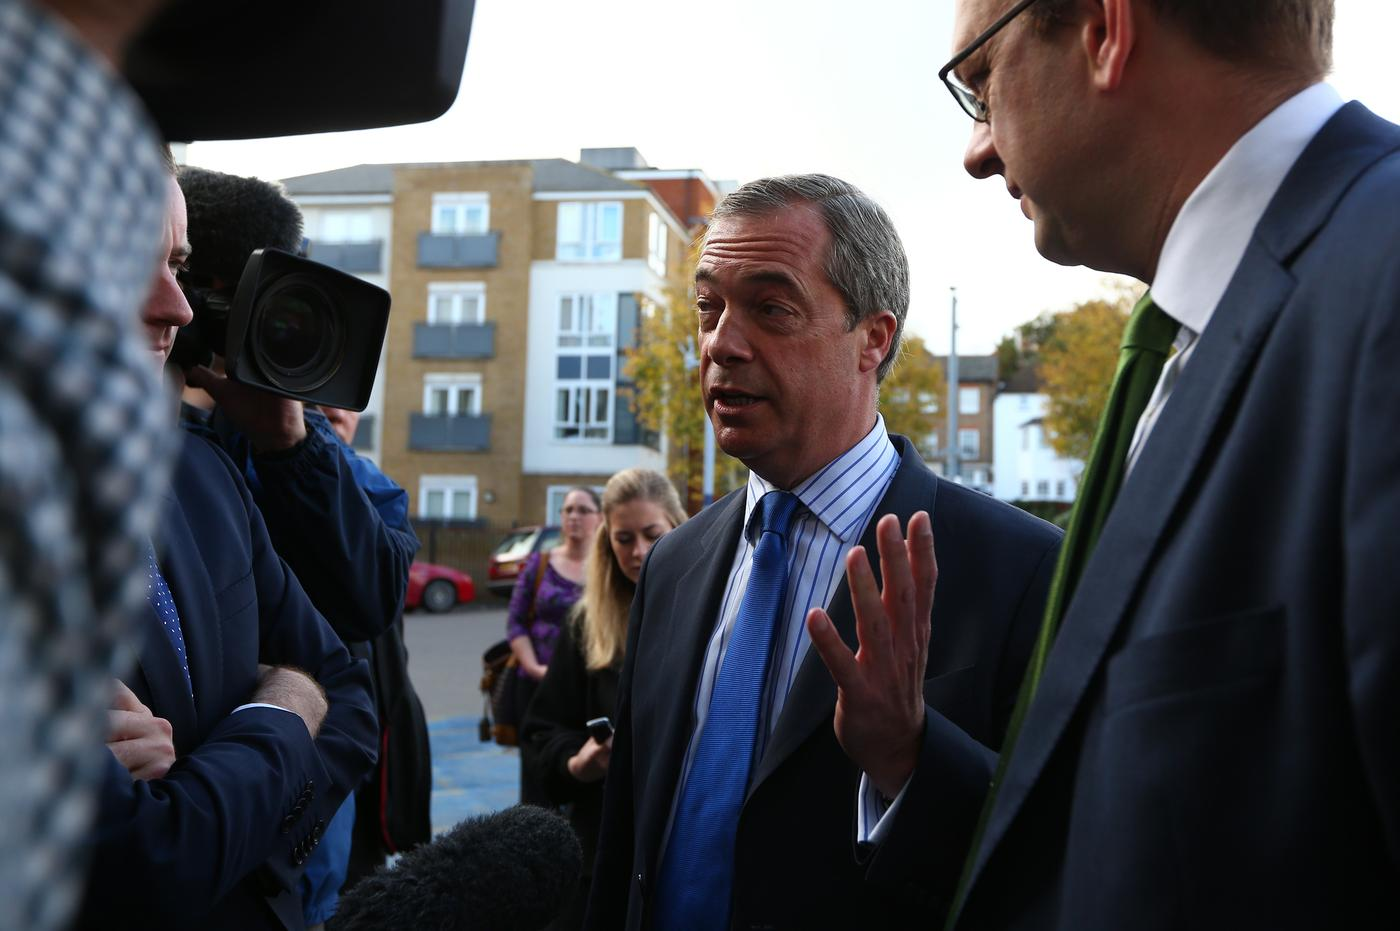 Nigel Farage humiliated over Ukip Calypso – It was unfunny, unloved and definitely racist